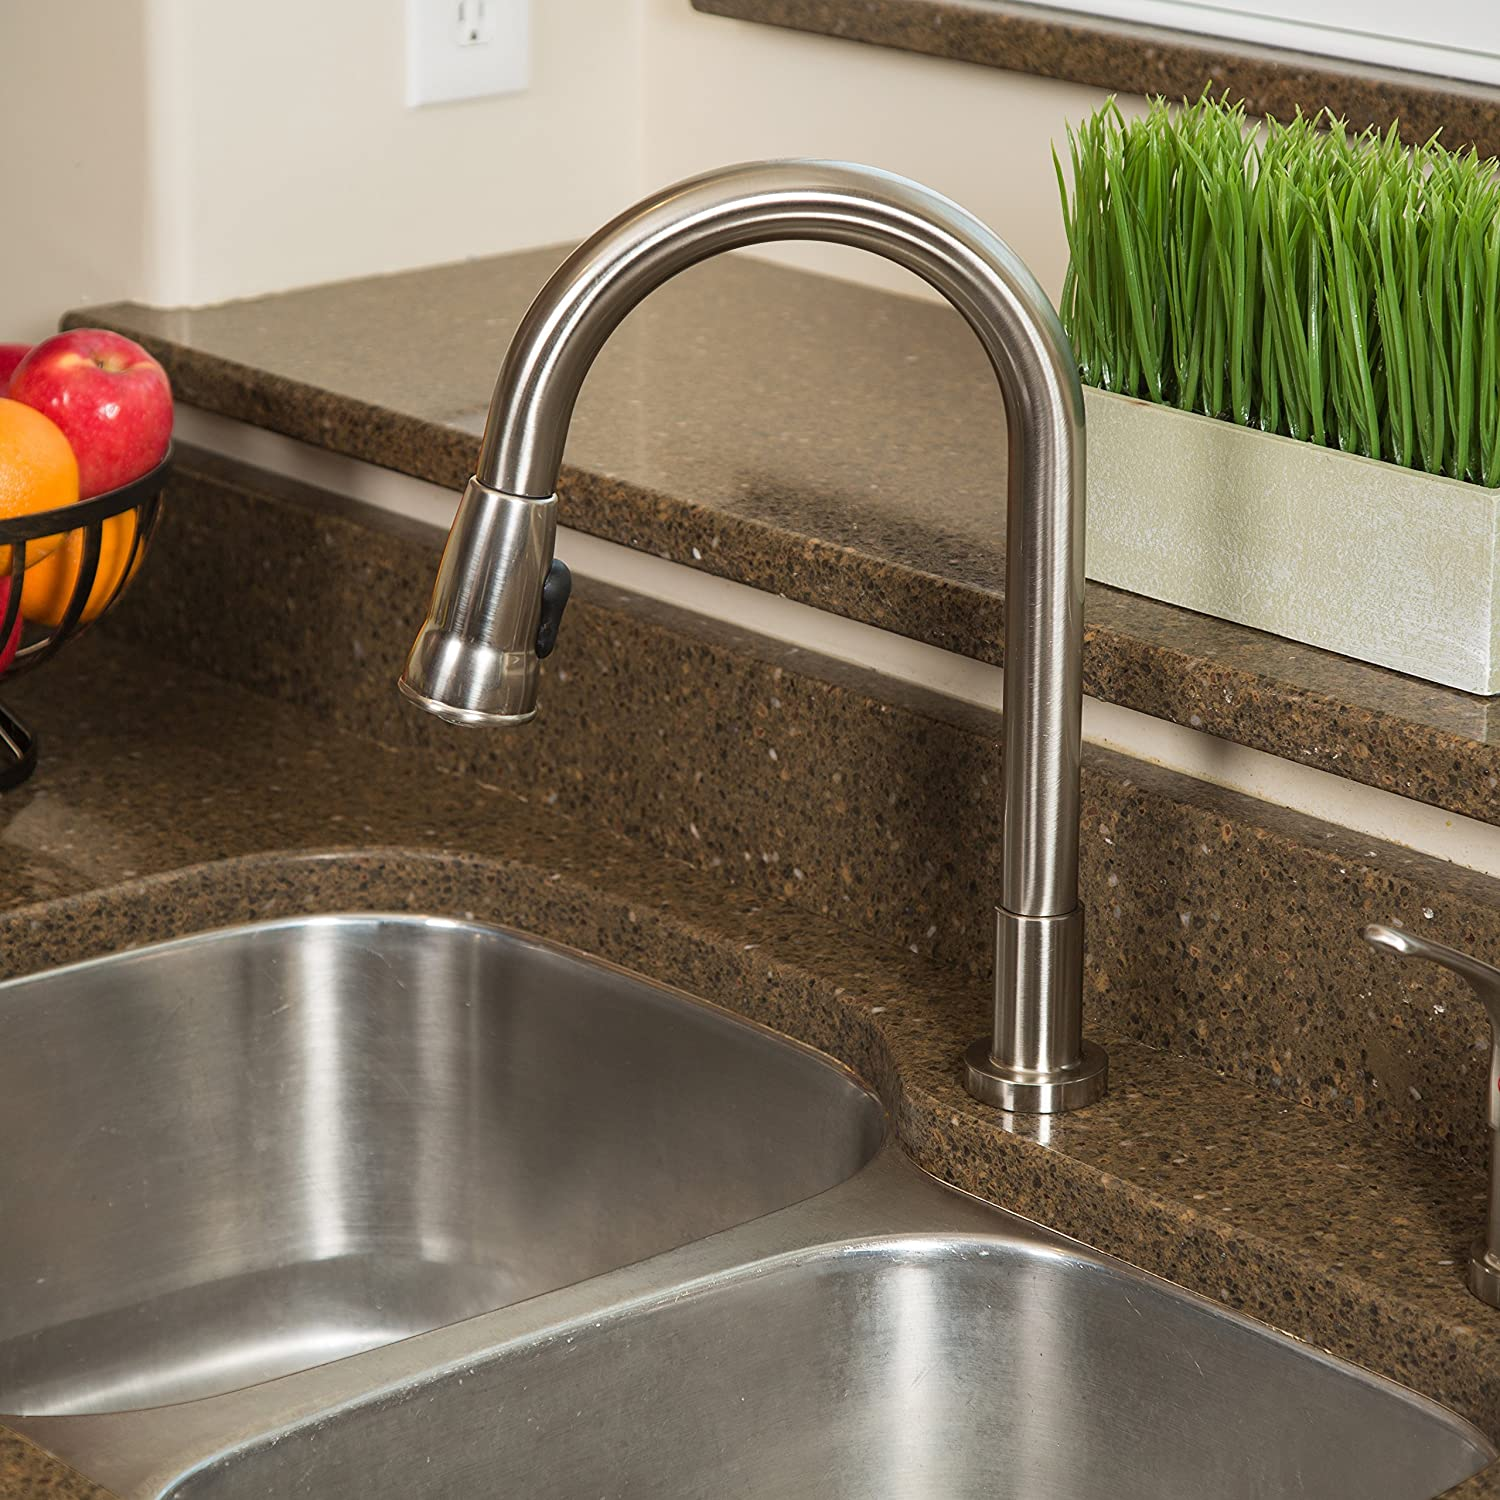 Pacific S Kitchen Faucets Pacific Bay Grandview Pull Down Kitchen Faucet With Soap Dispenser